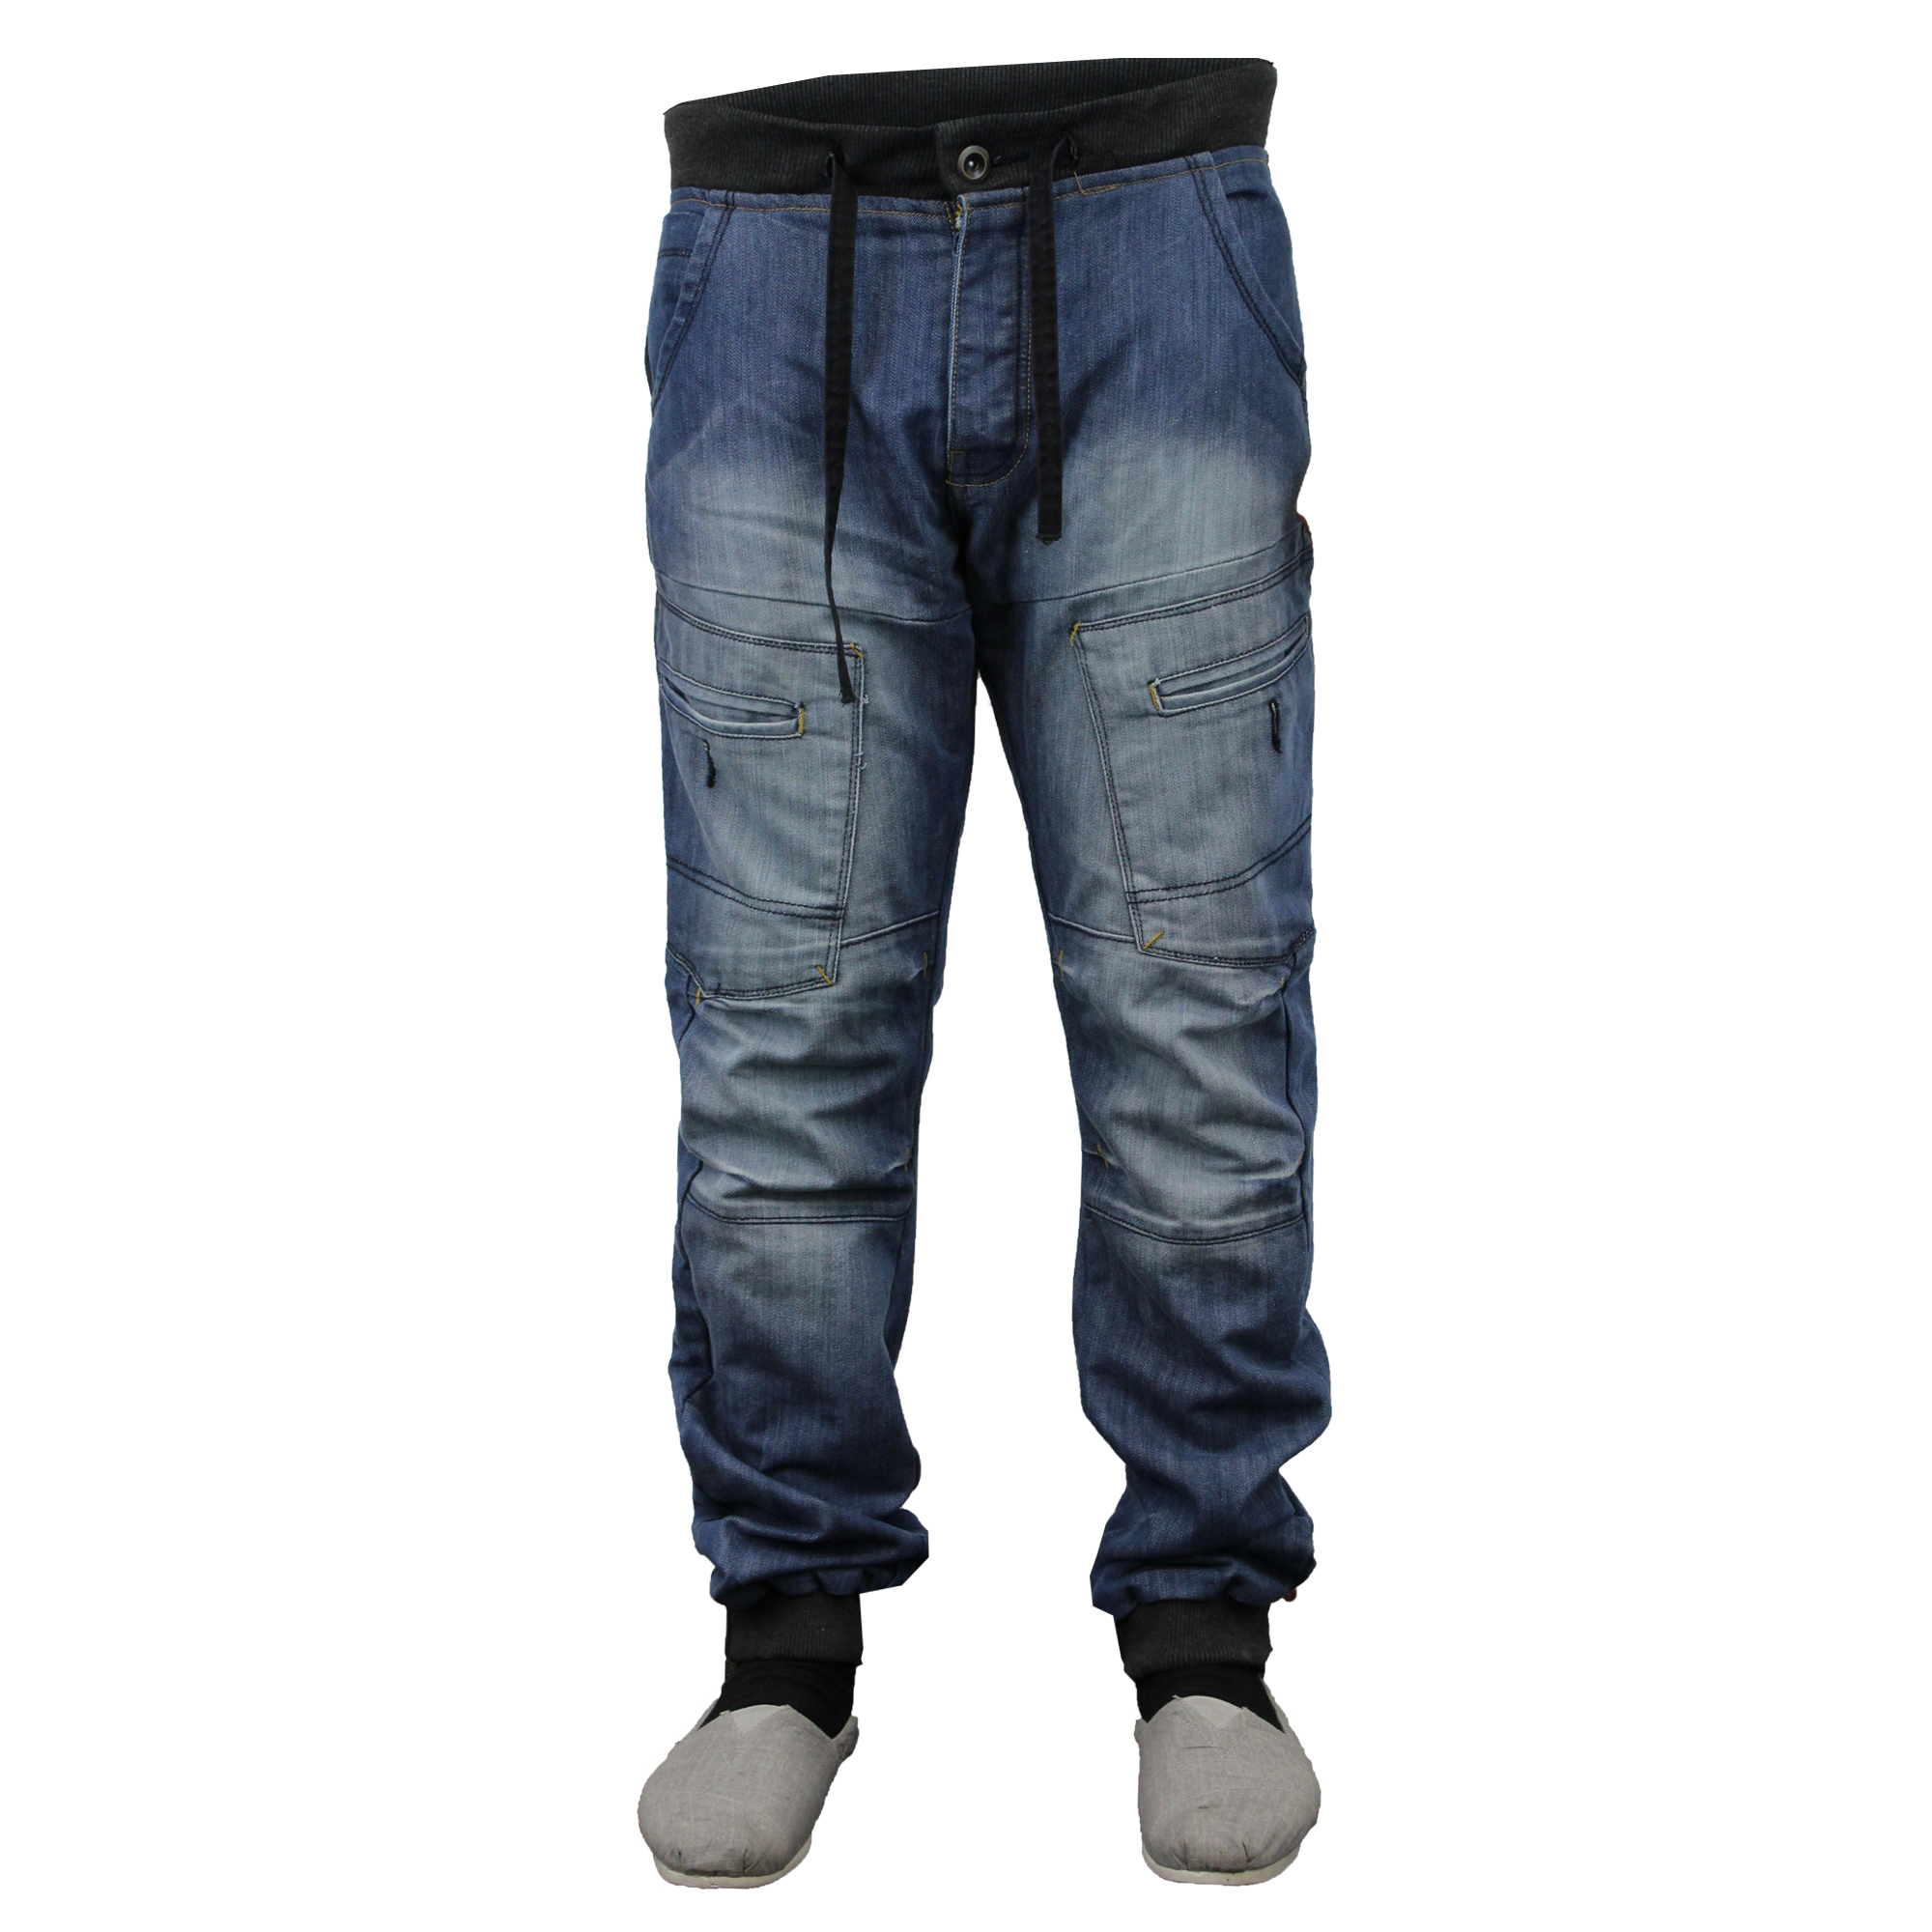 Abercrombie & Fitch is committed to quality and expert craftsmanship, from each pair of jeans to joggers, twill pants, cargo pants and more to complete your collection. Top off your look with the perfect jackets and outerwear during colder months or any of our mens shirts, all year 'round.